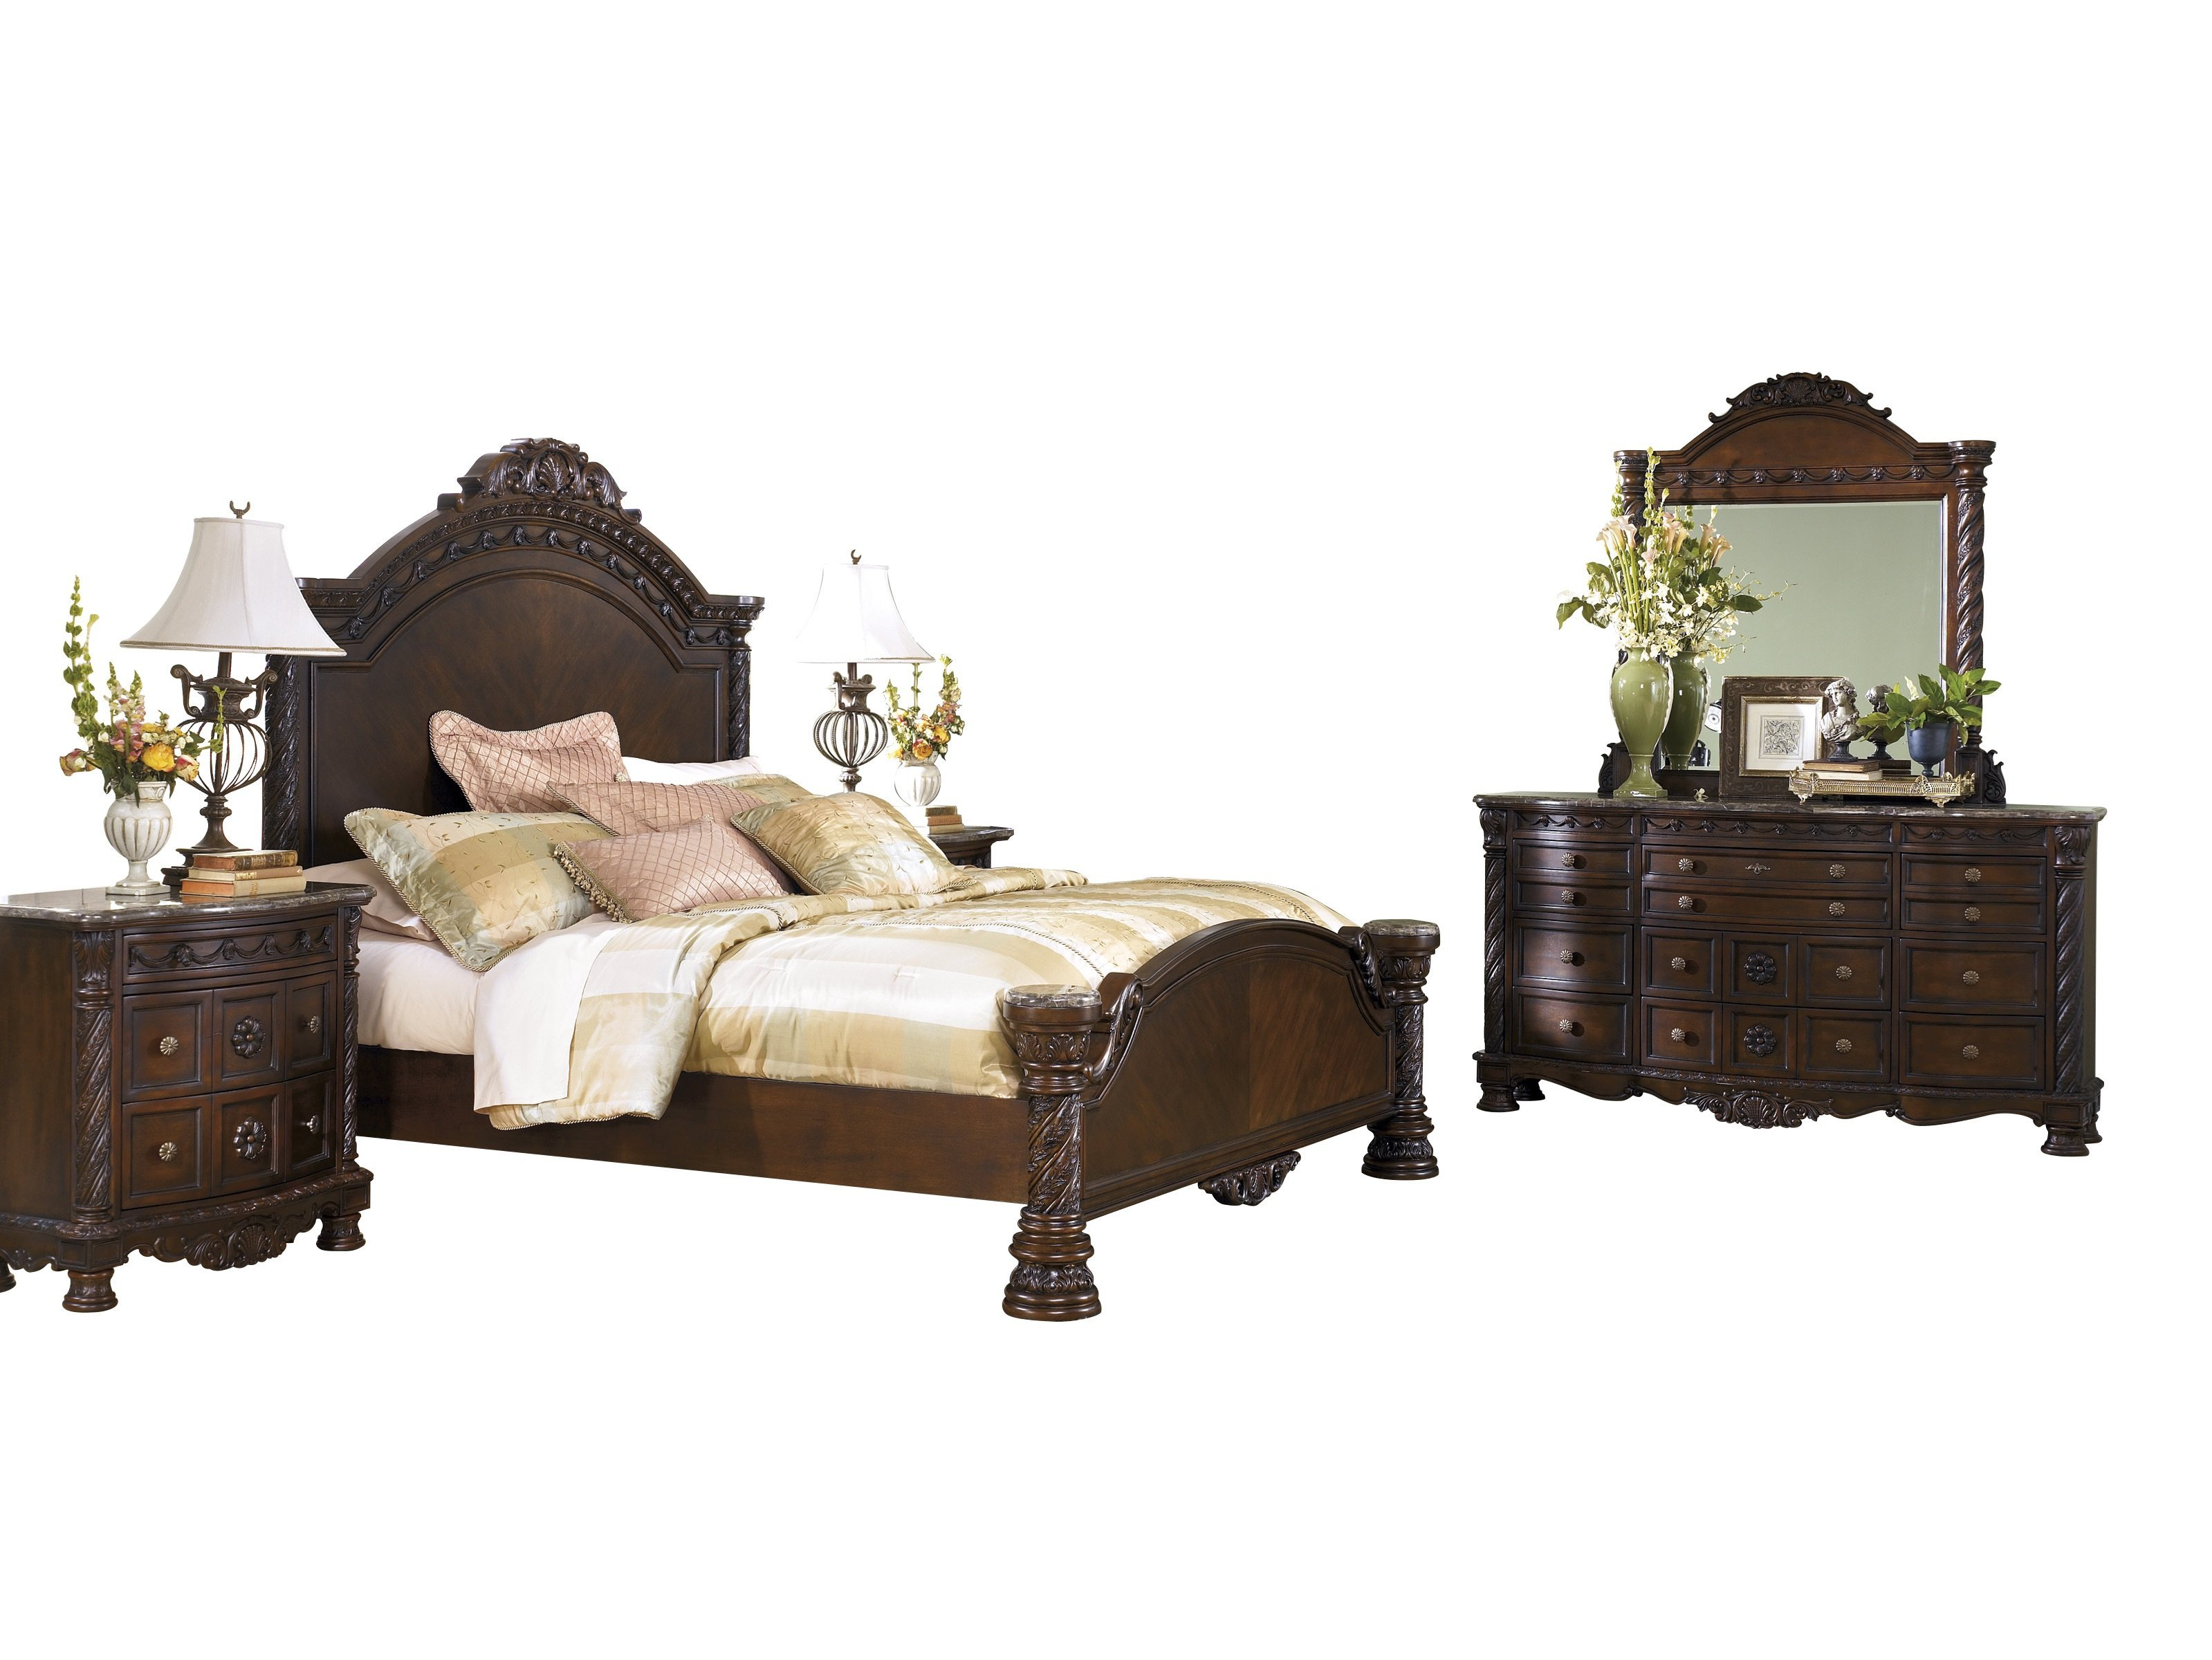 Ashley Furniture North Shore 5 Pc Bedroom Set E King Panel Bed Dresser Mirror 1 Nightstand Chest Dark Brown